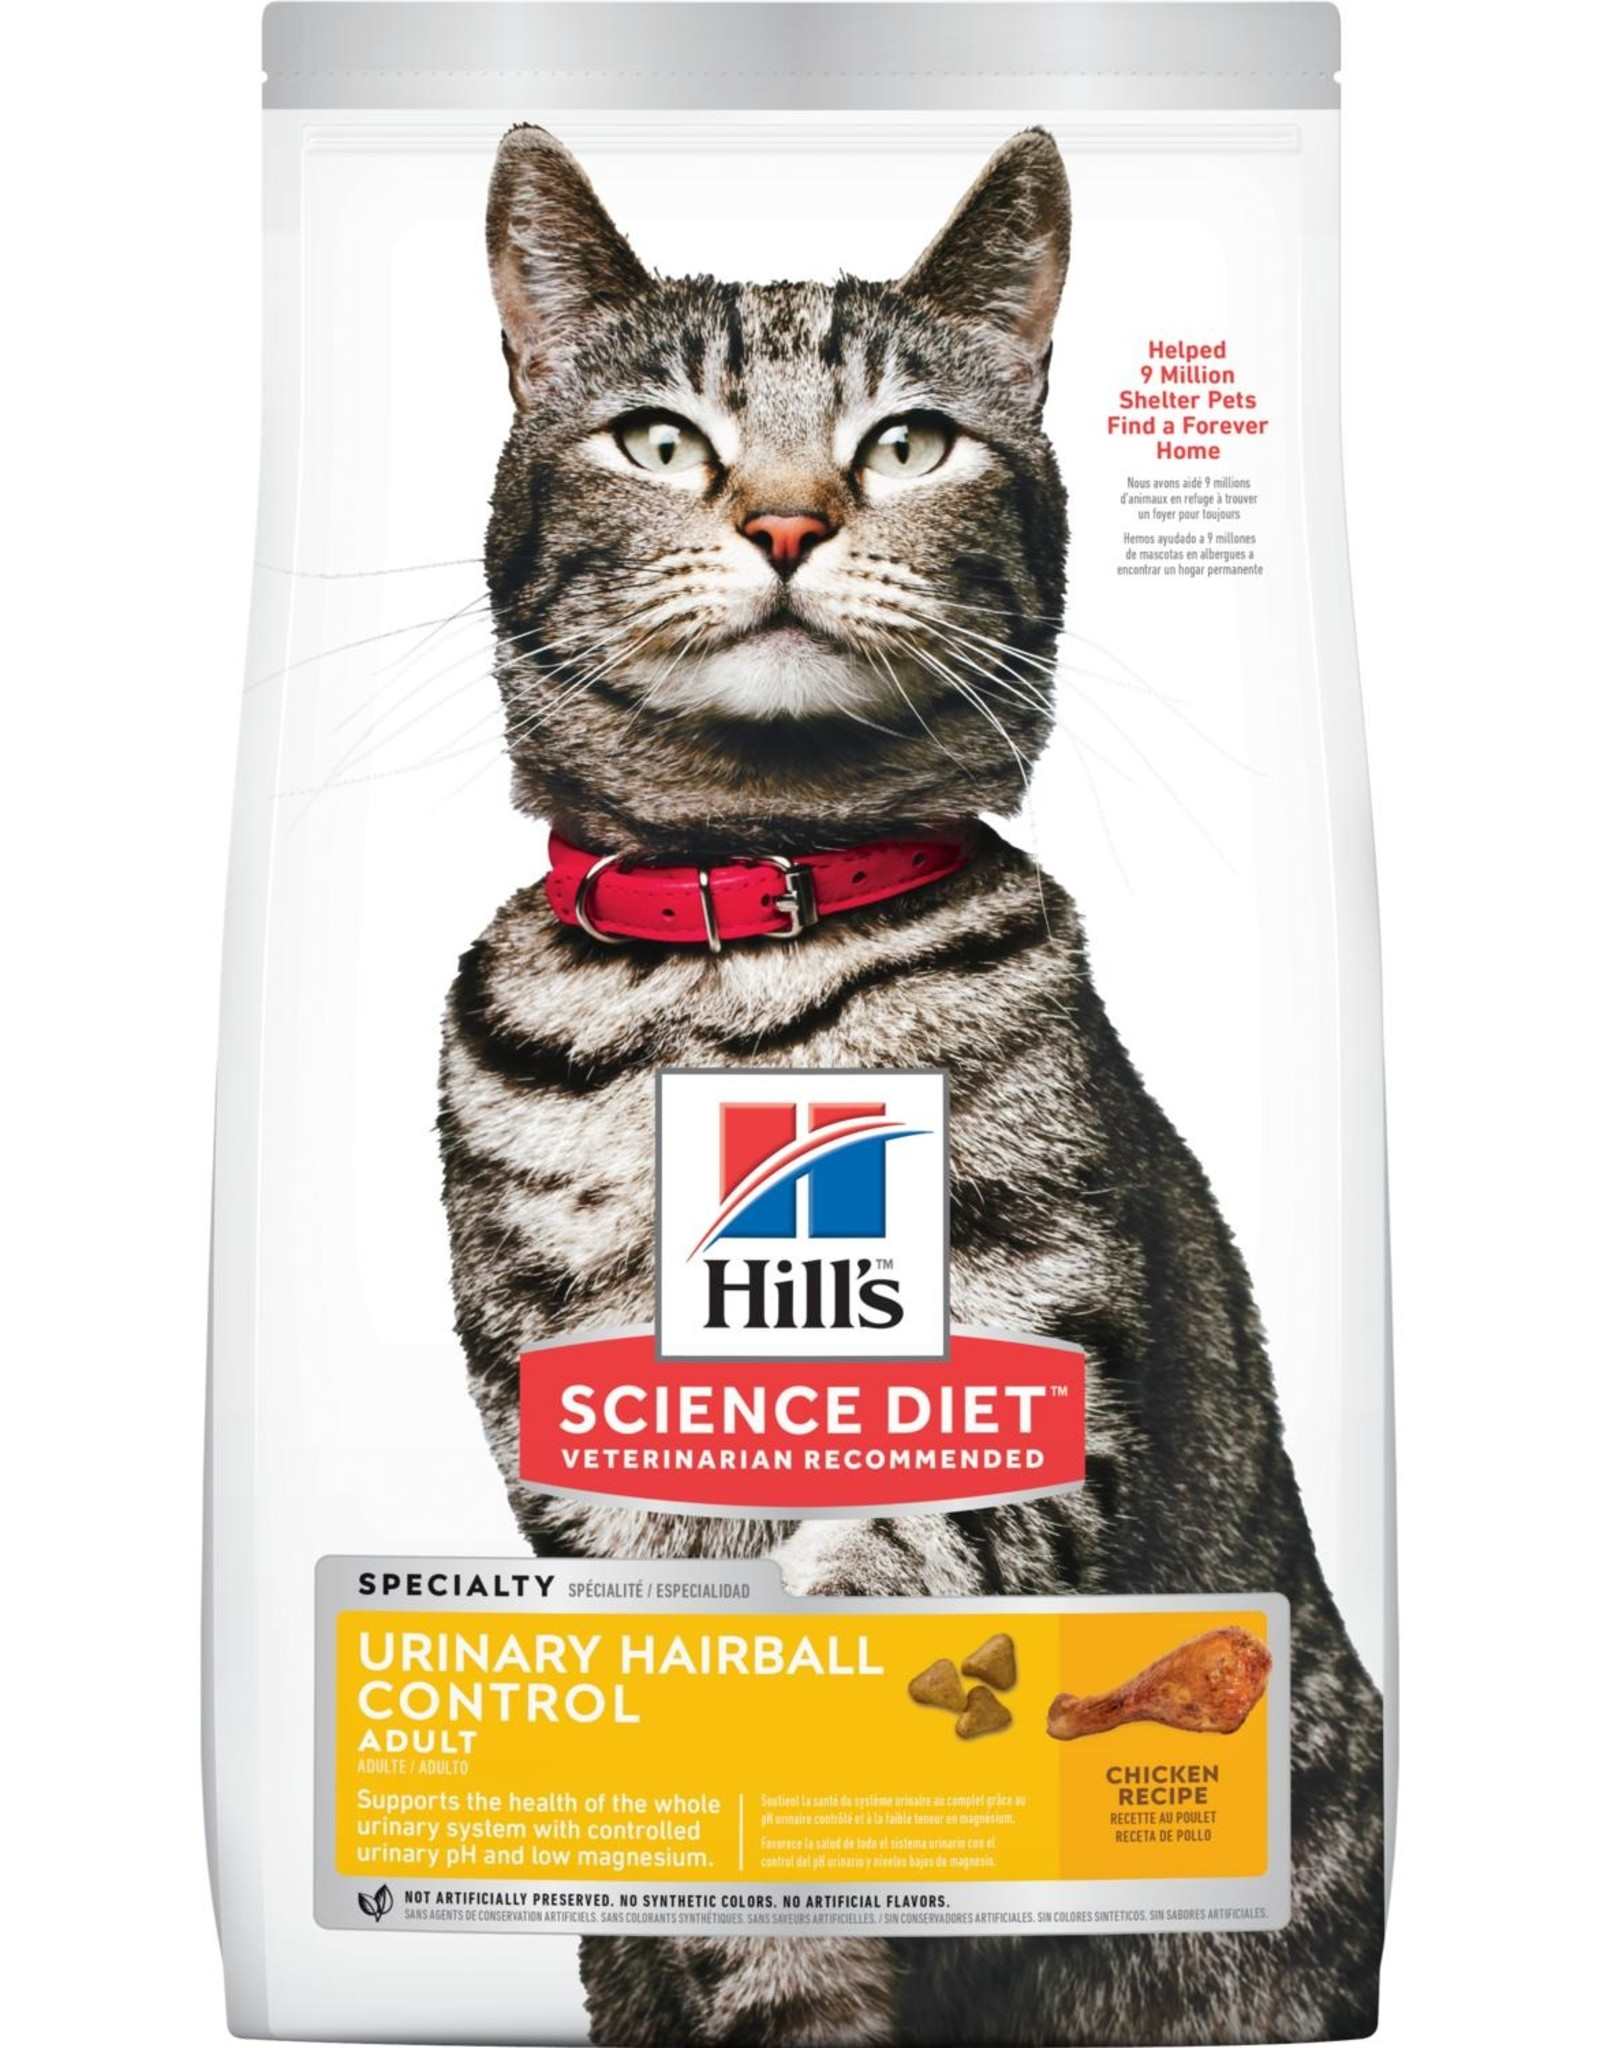 SCIENCE DIET HILL'S SCIENCE DIET FELINE ADULT URINARY/HAIRBALL CONTROL 15.5LBS